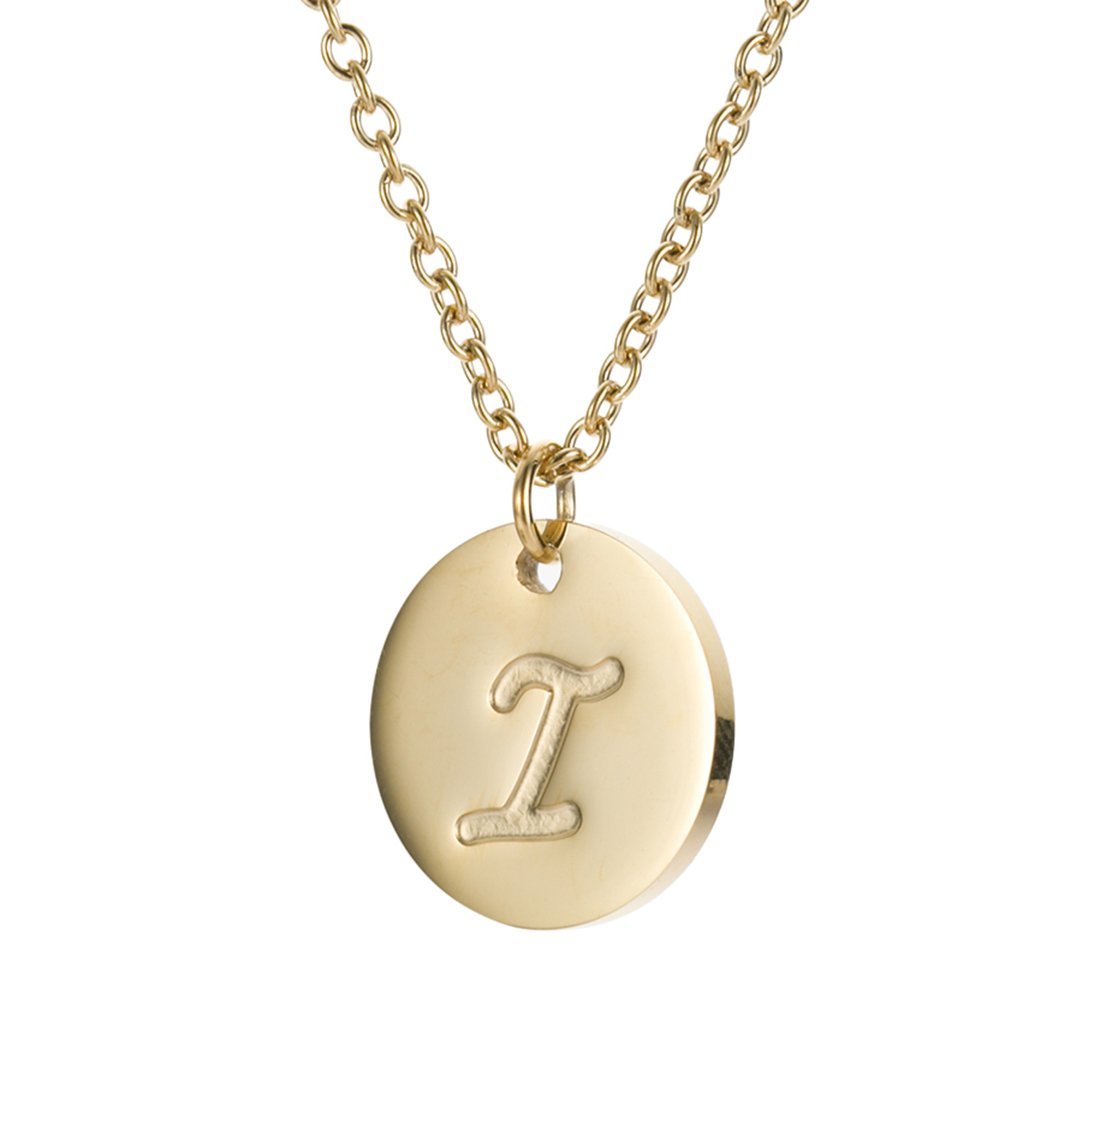 HUAN XUN Initial Necklace Best Friend Necklaces for Girls Stainless Steel, 18